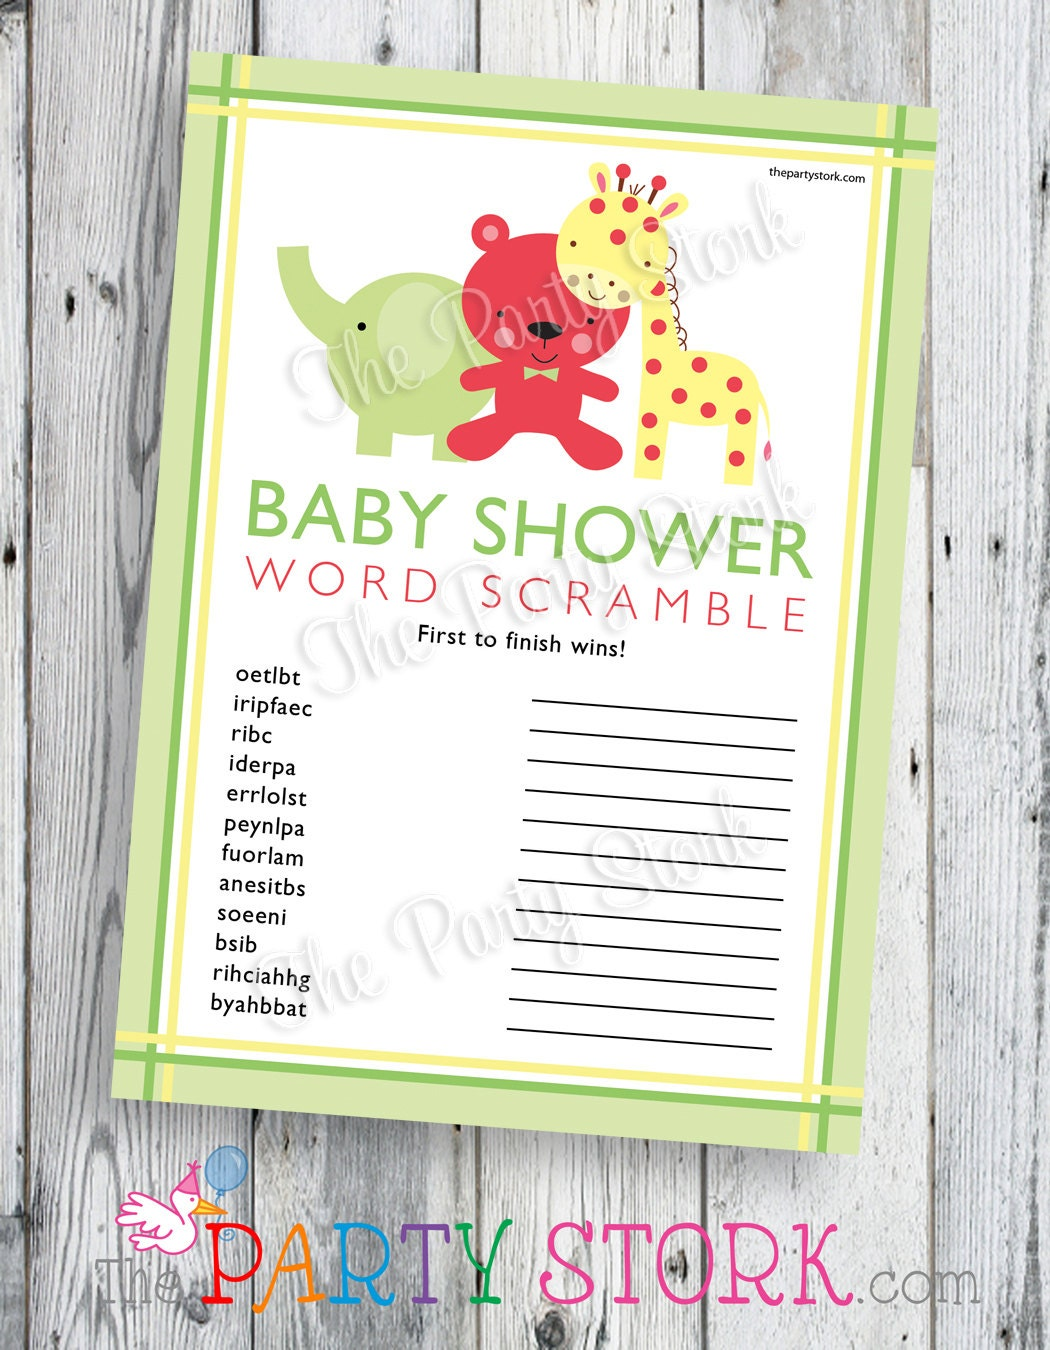 safari baby shower word scramble game printable by thepartystork